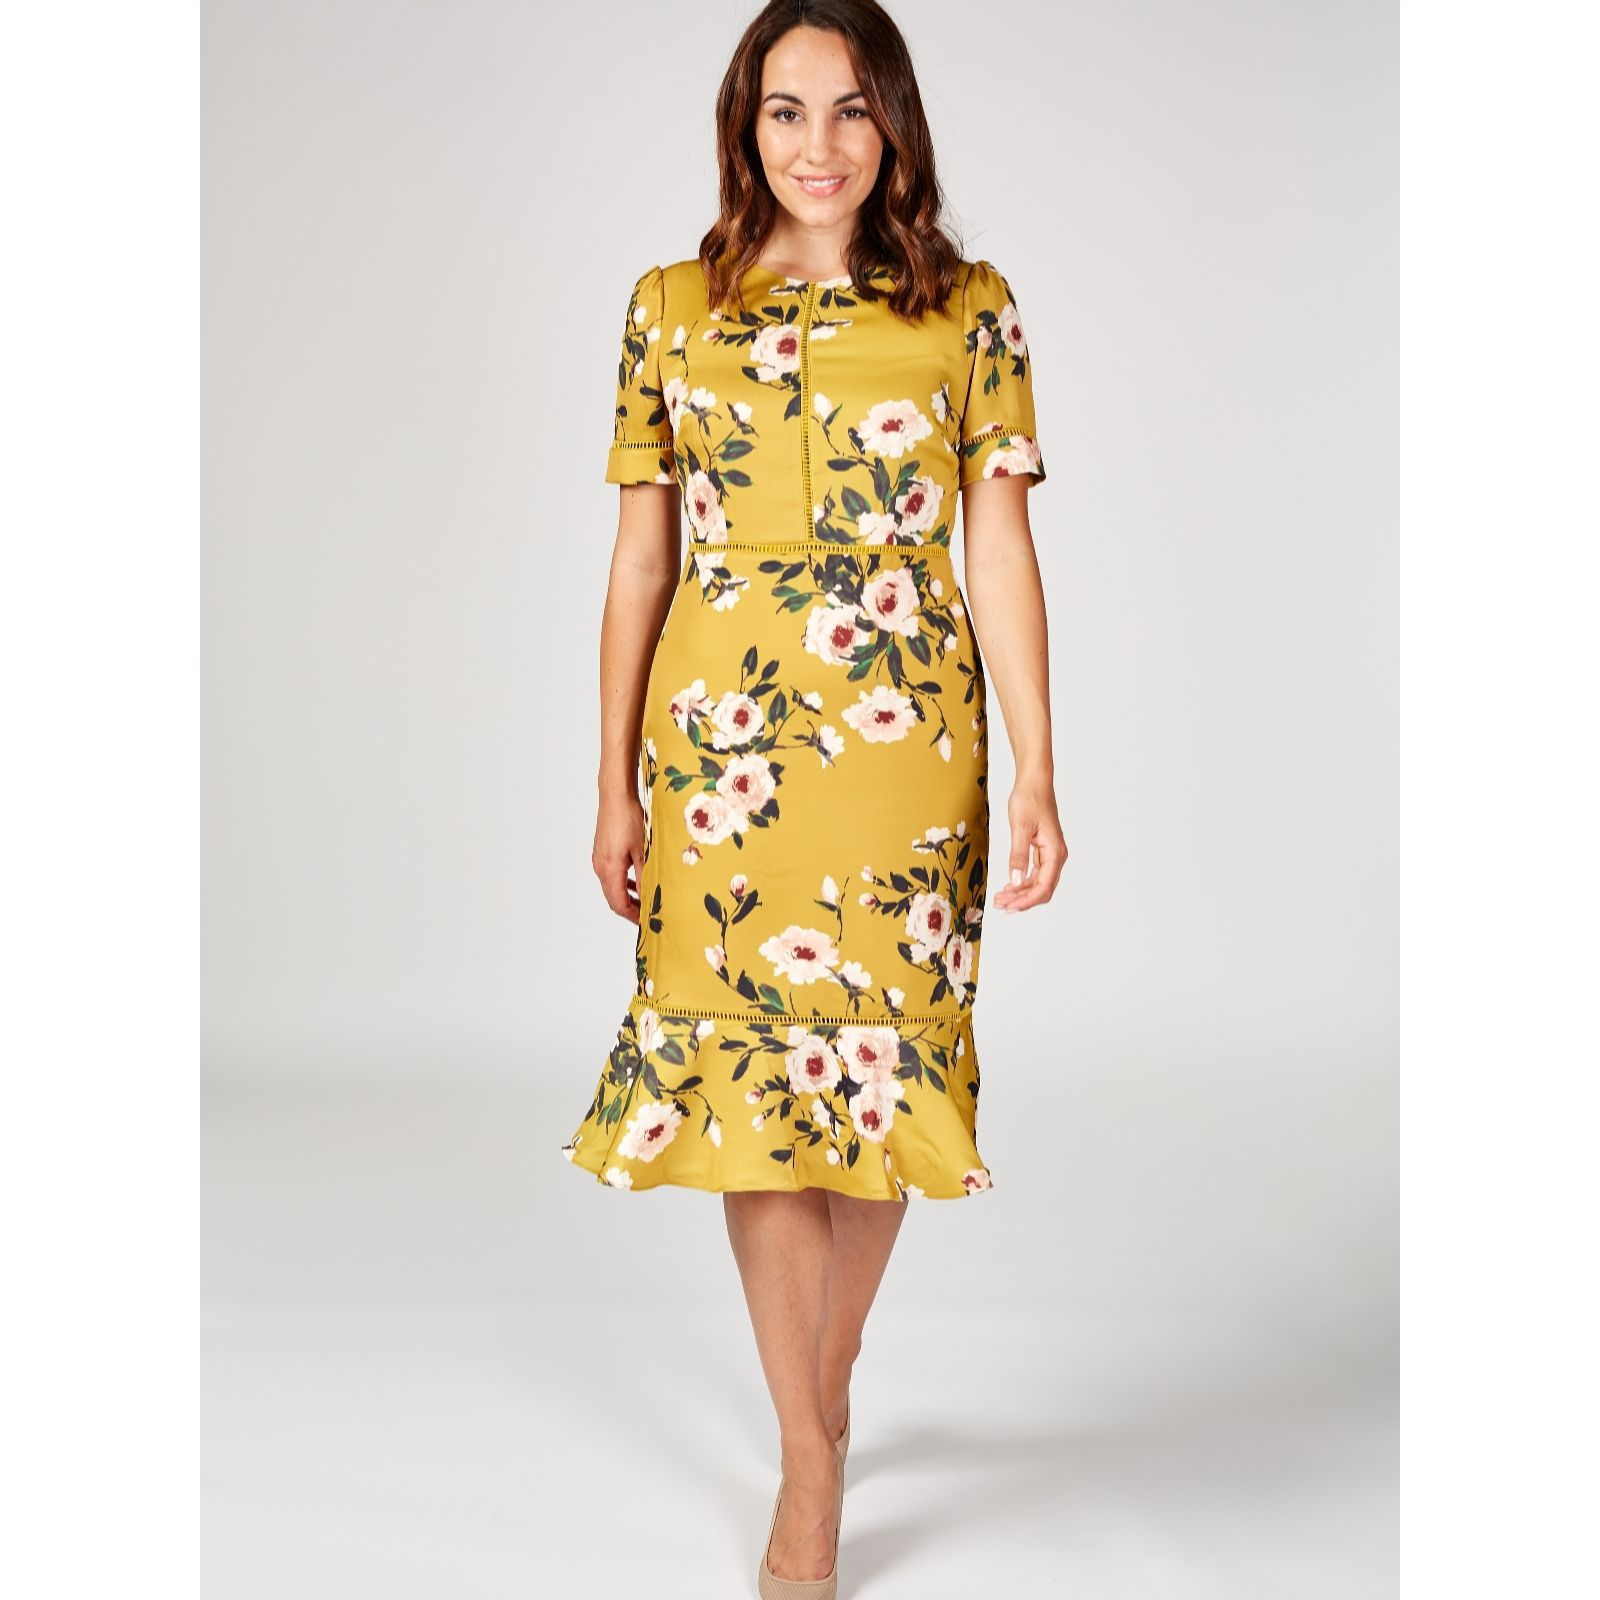 Phase Eight Hilary Floral Dress Qvc Uk